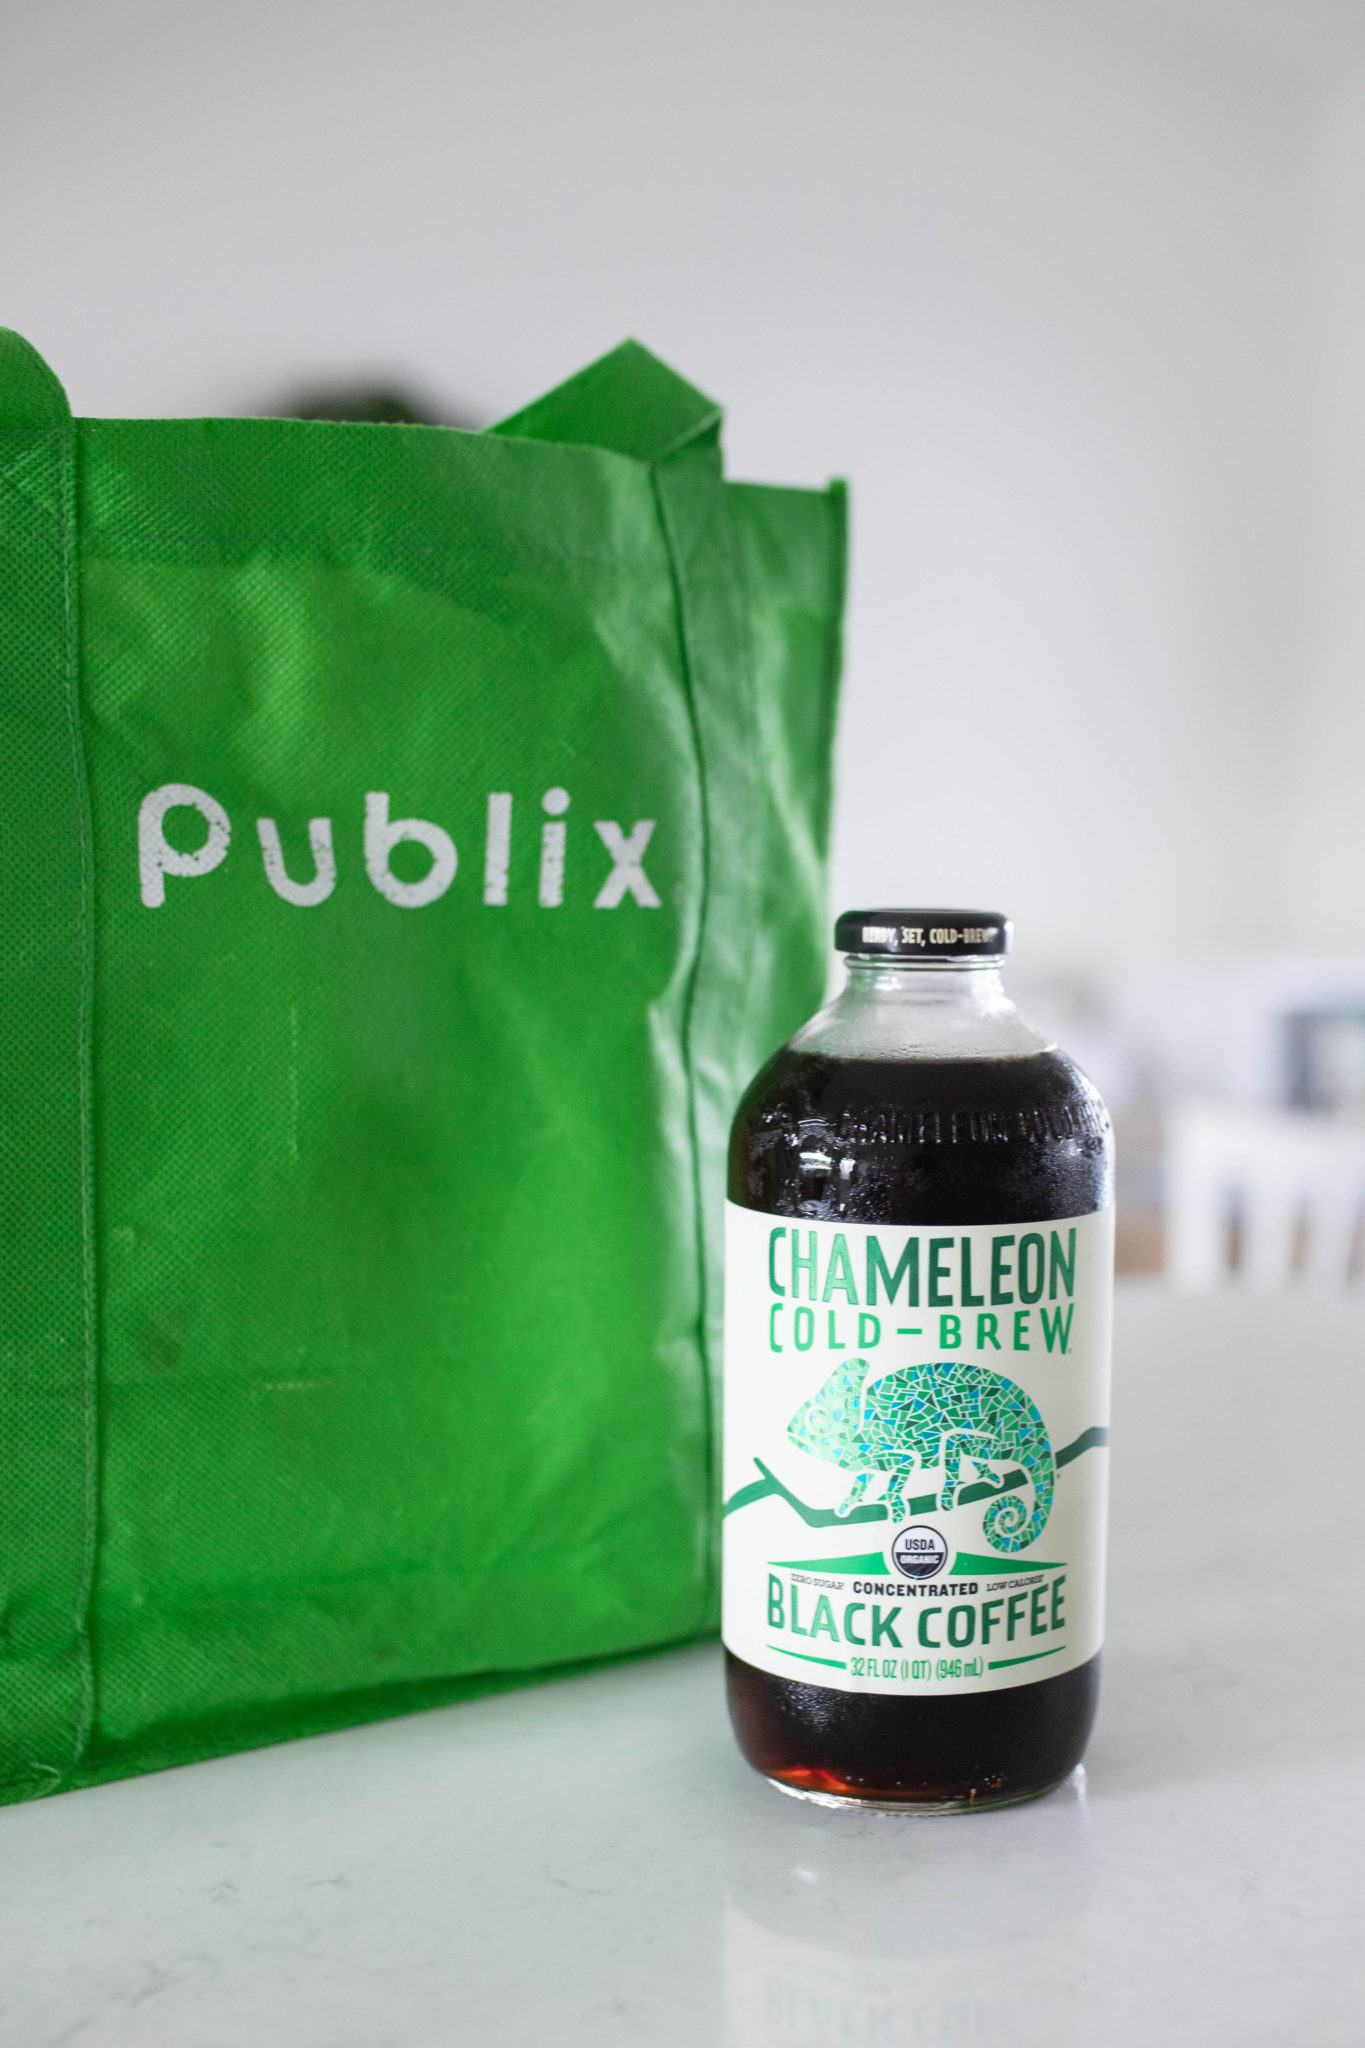 Easy Dairy Free Vanilla Coconut Milk Coffee made from Chameleon Cold-Brew Concentrate - Tampa Lifestyle Blogger, Crazy Life with Littles